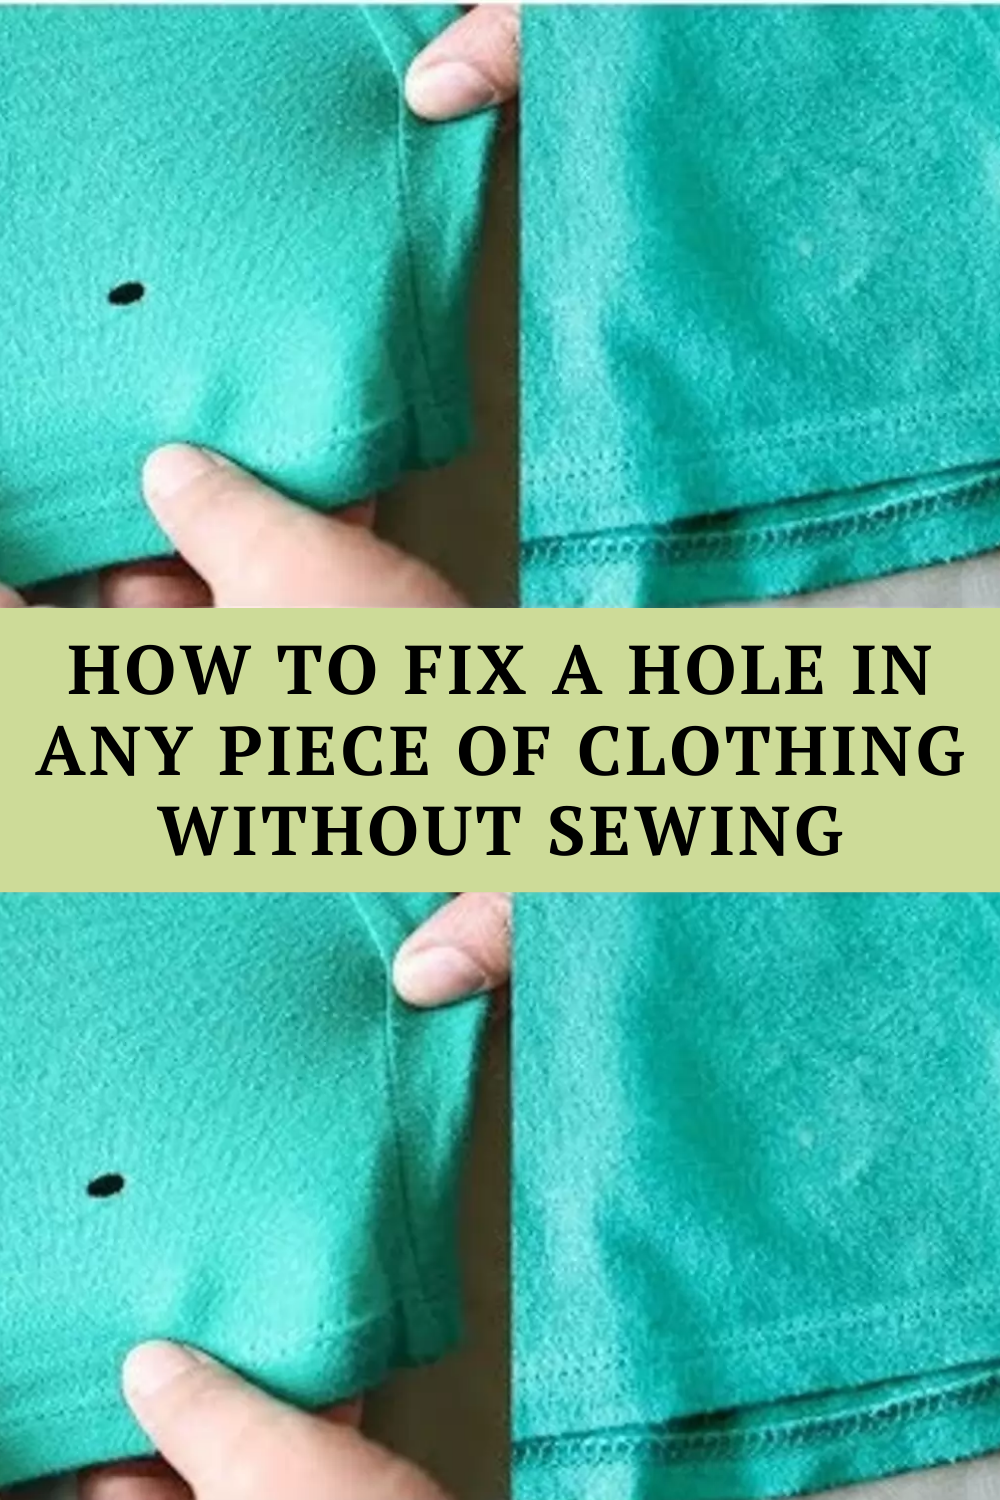 How To Fix A Hole In Any Piece Of Clothing Without Sewing Short Moral Stories Inspirational Short Stories Spotlight Stories